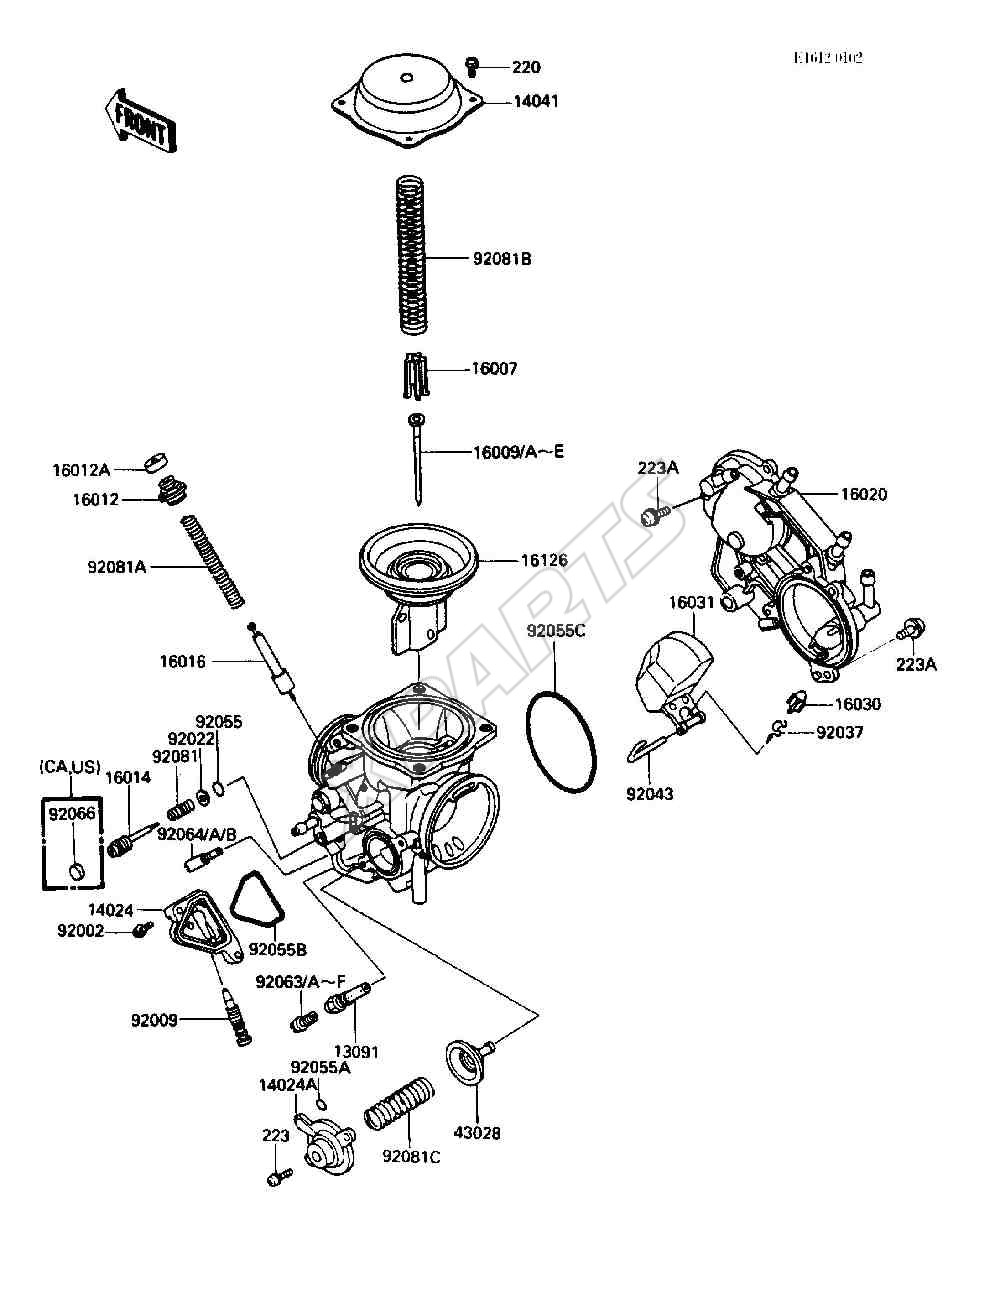 Kawasaki Vulcan 750 Fuel Line Diagram